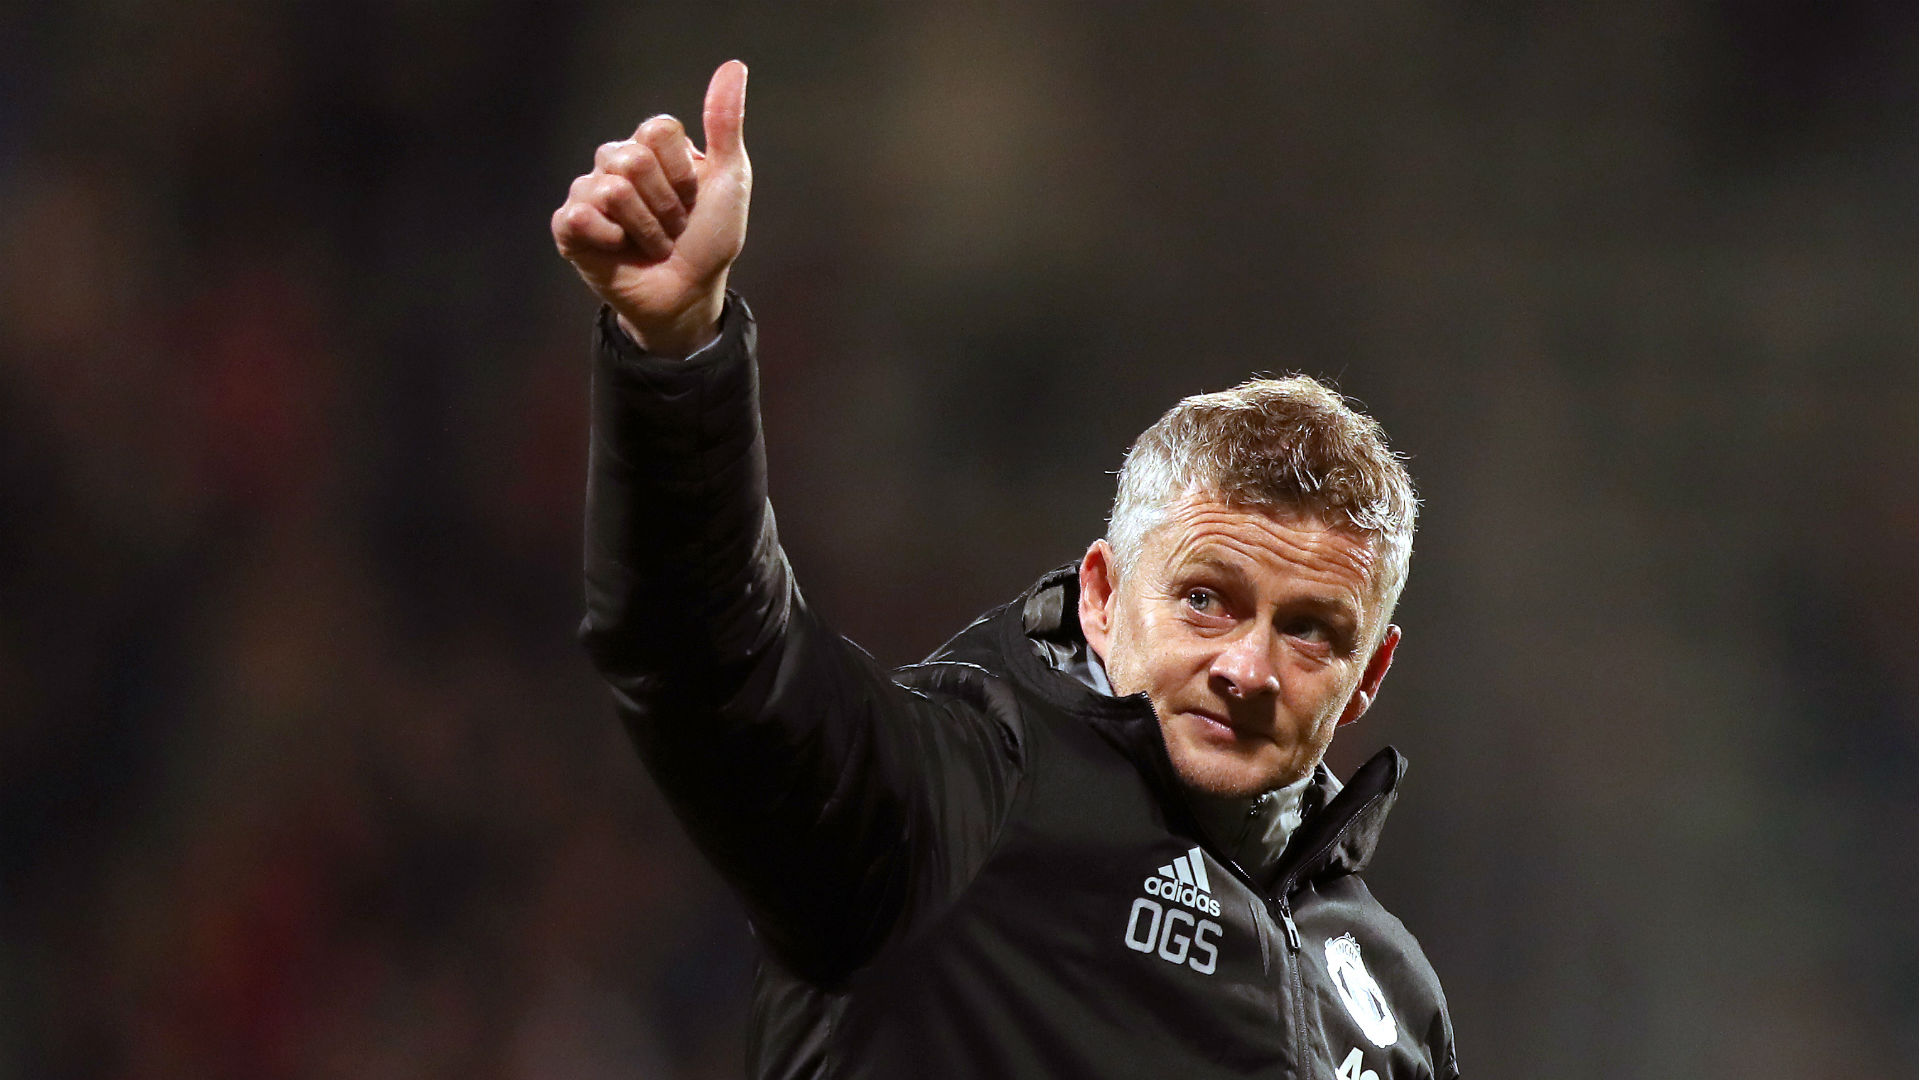 Man United won't wait 30 years for title – Solskjaer aims dig at Liverpool